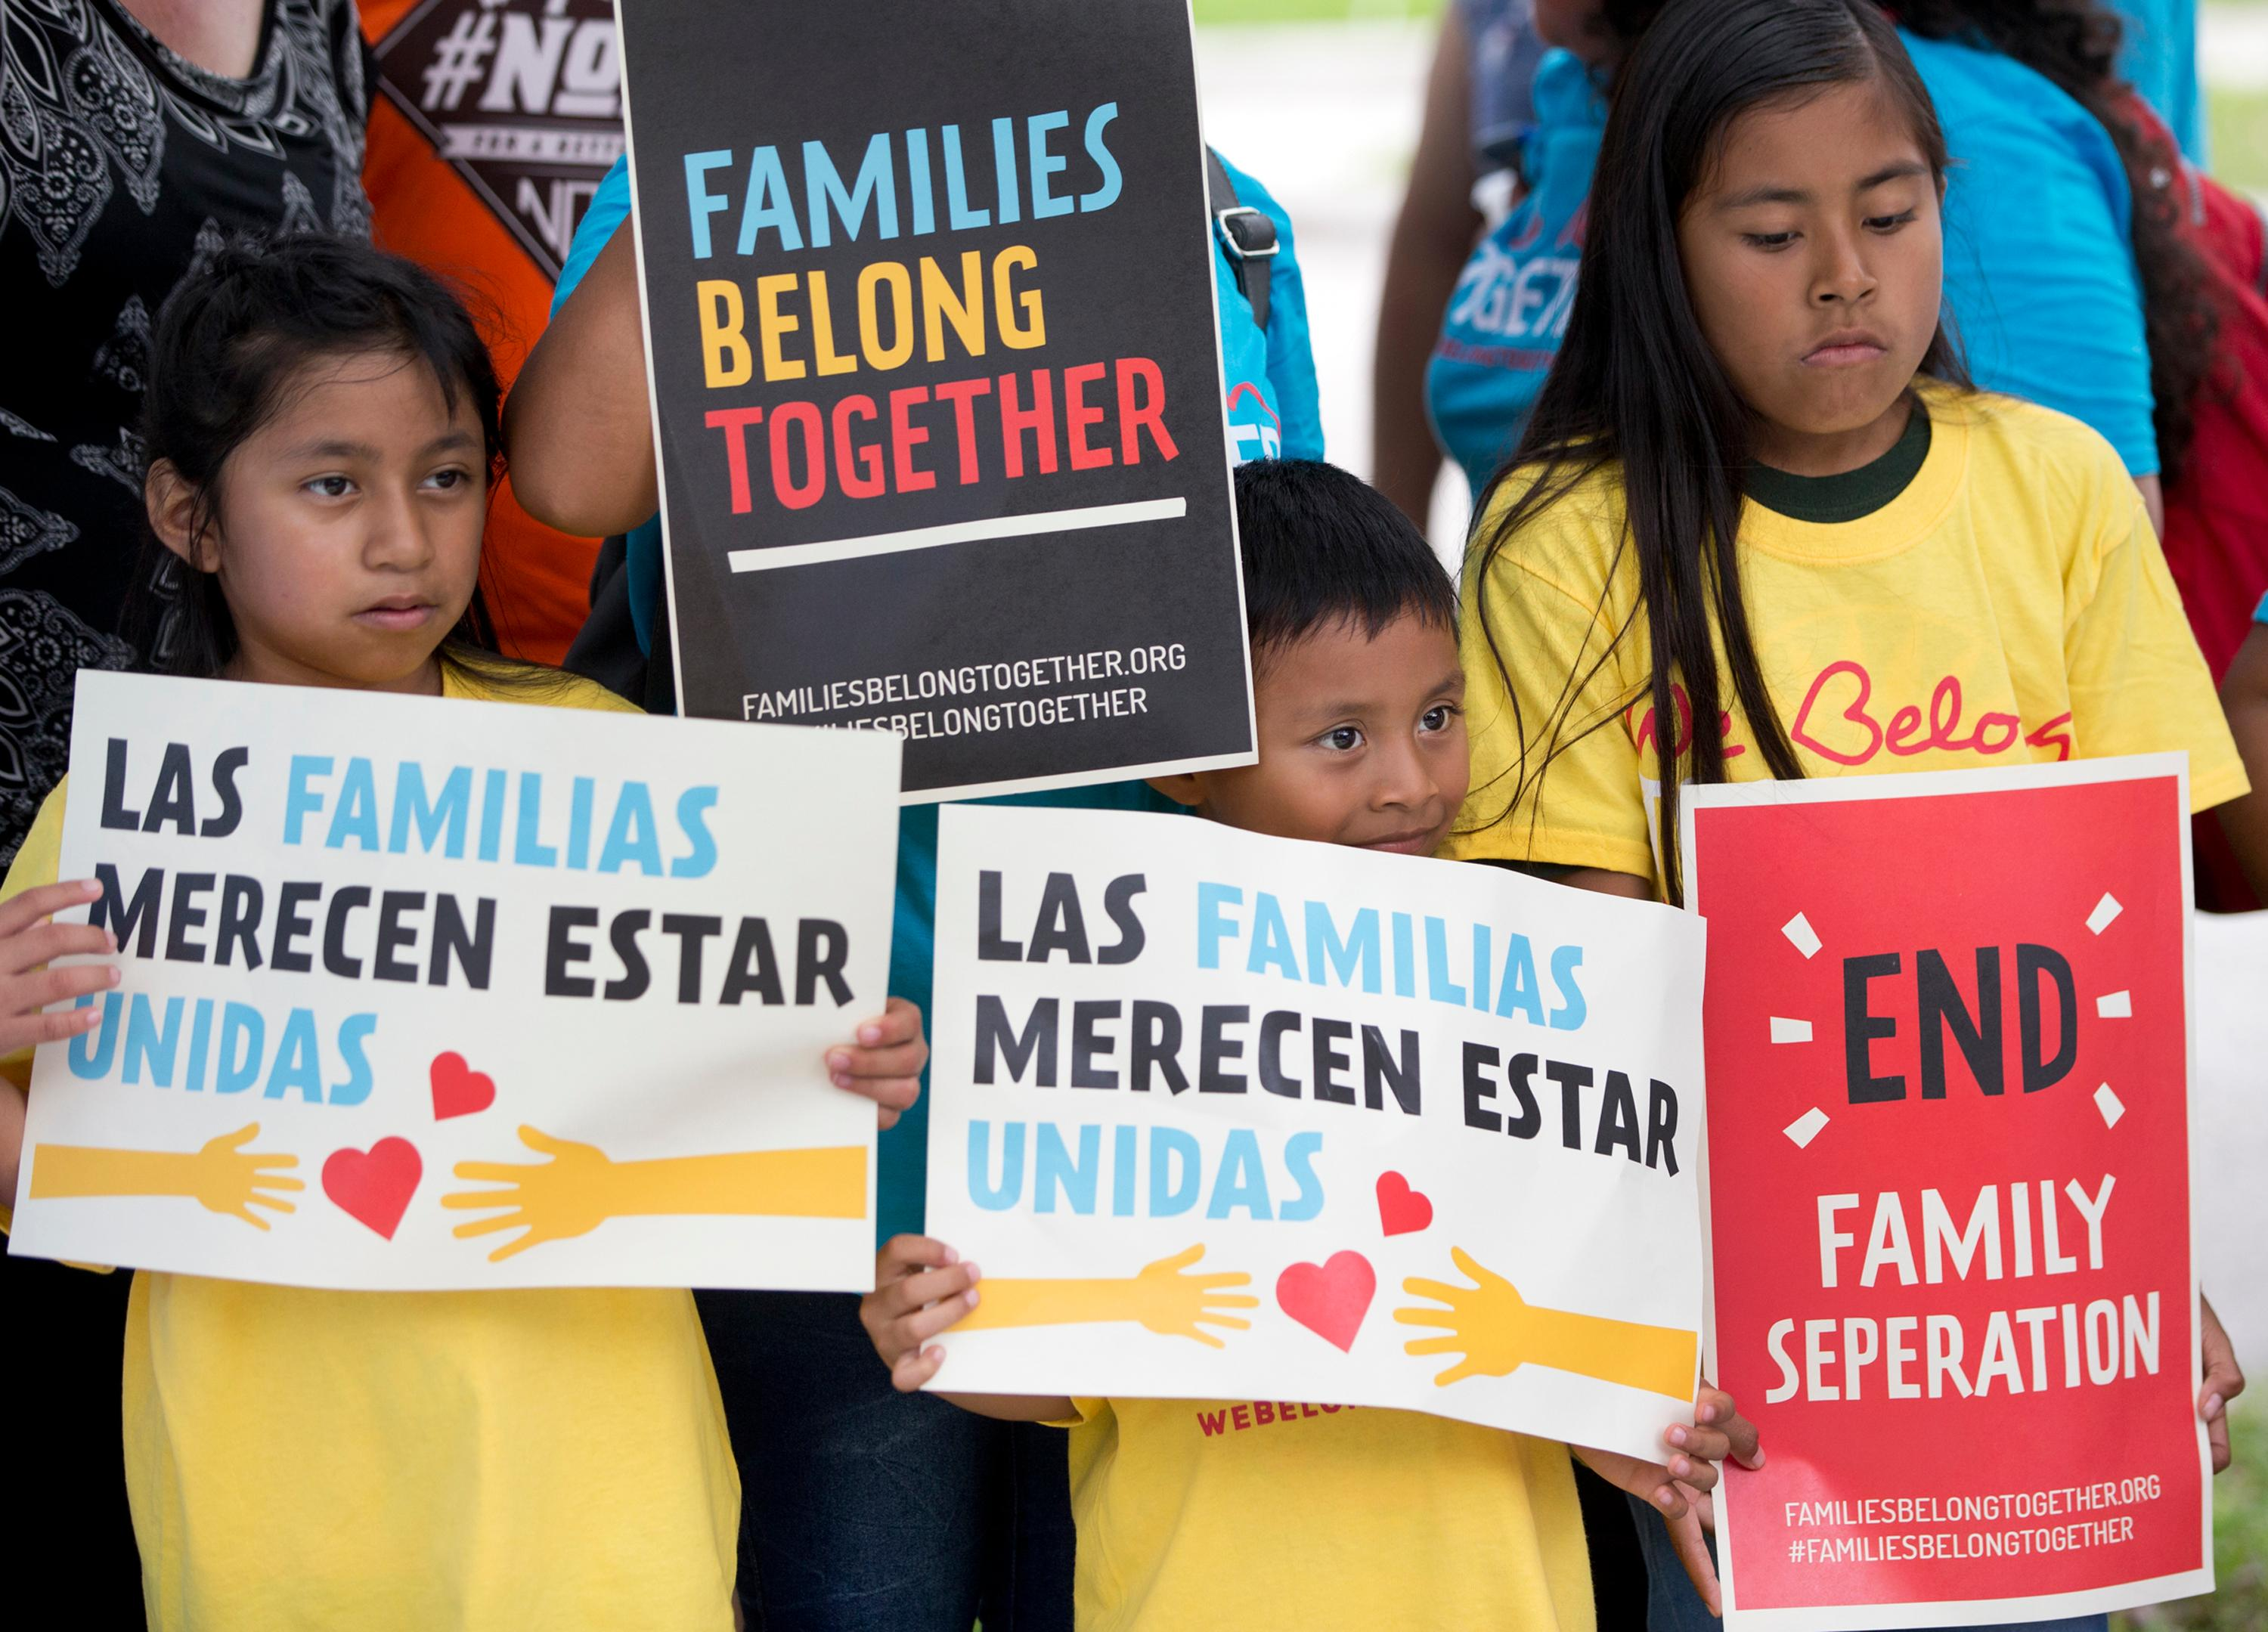 FILE - In this June 1, 2018, file photo, children hold signs during a demonstration in front of the Immigration and Customs Enforcement offices in Miramar, Fla. The Trump administration's move to separate immigrant parents from their children on the U.S.-Mexico border has turned into a full-blown crisis in recent weeks, drawing denunciation from the United Nations, Roman Catholic bishops and countless humanitarian groups. (AP Photo/Wilfredo Lee, File)